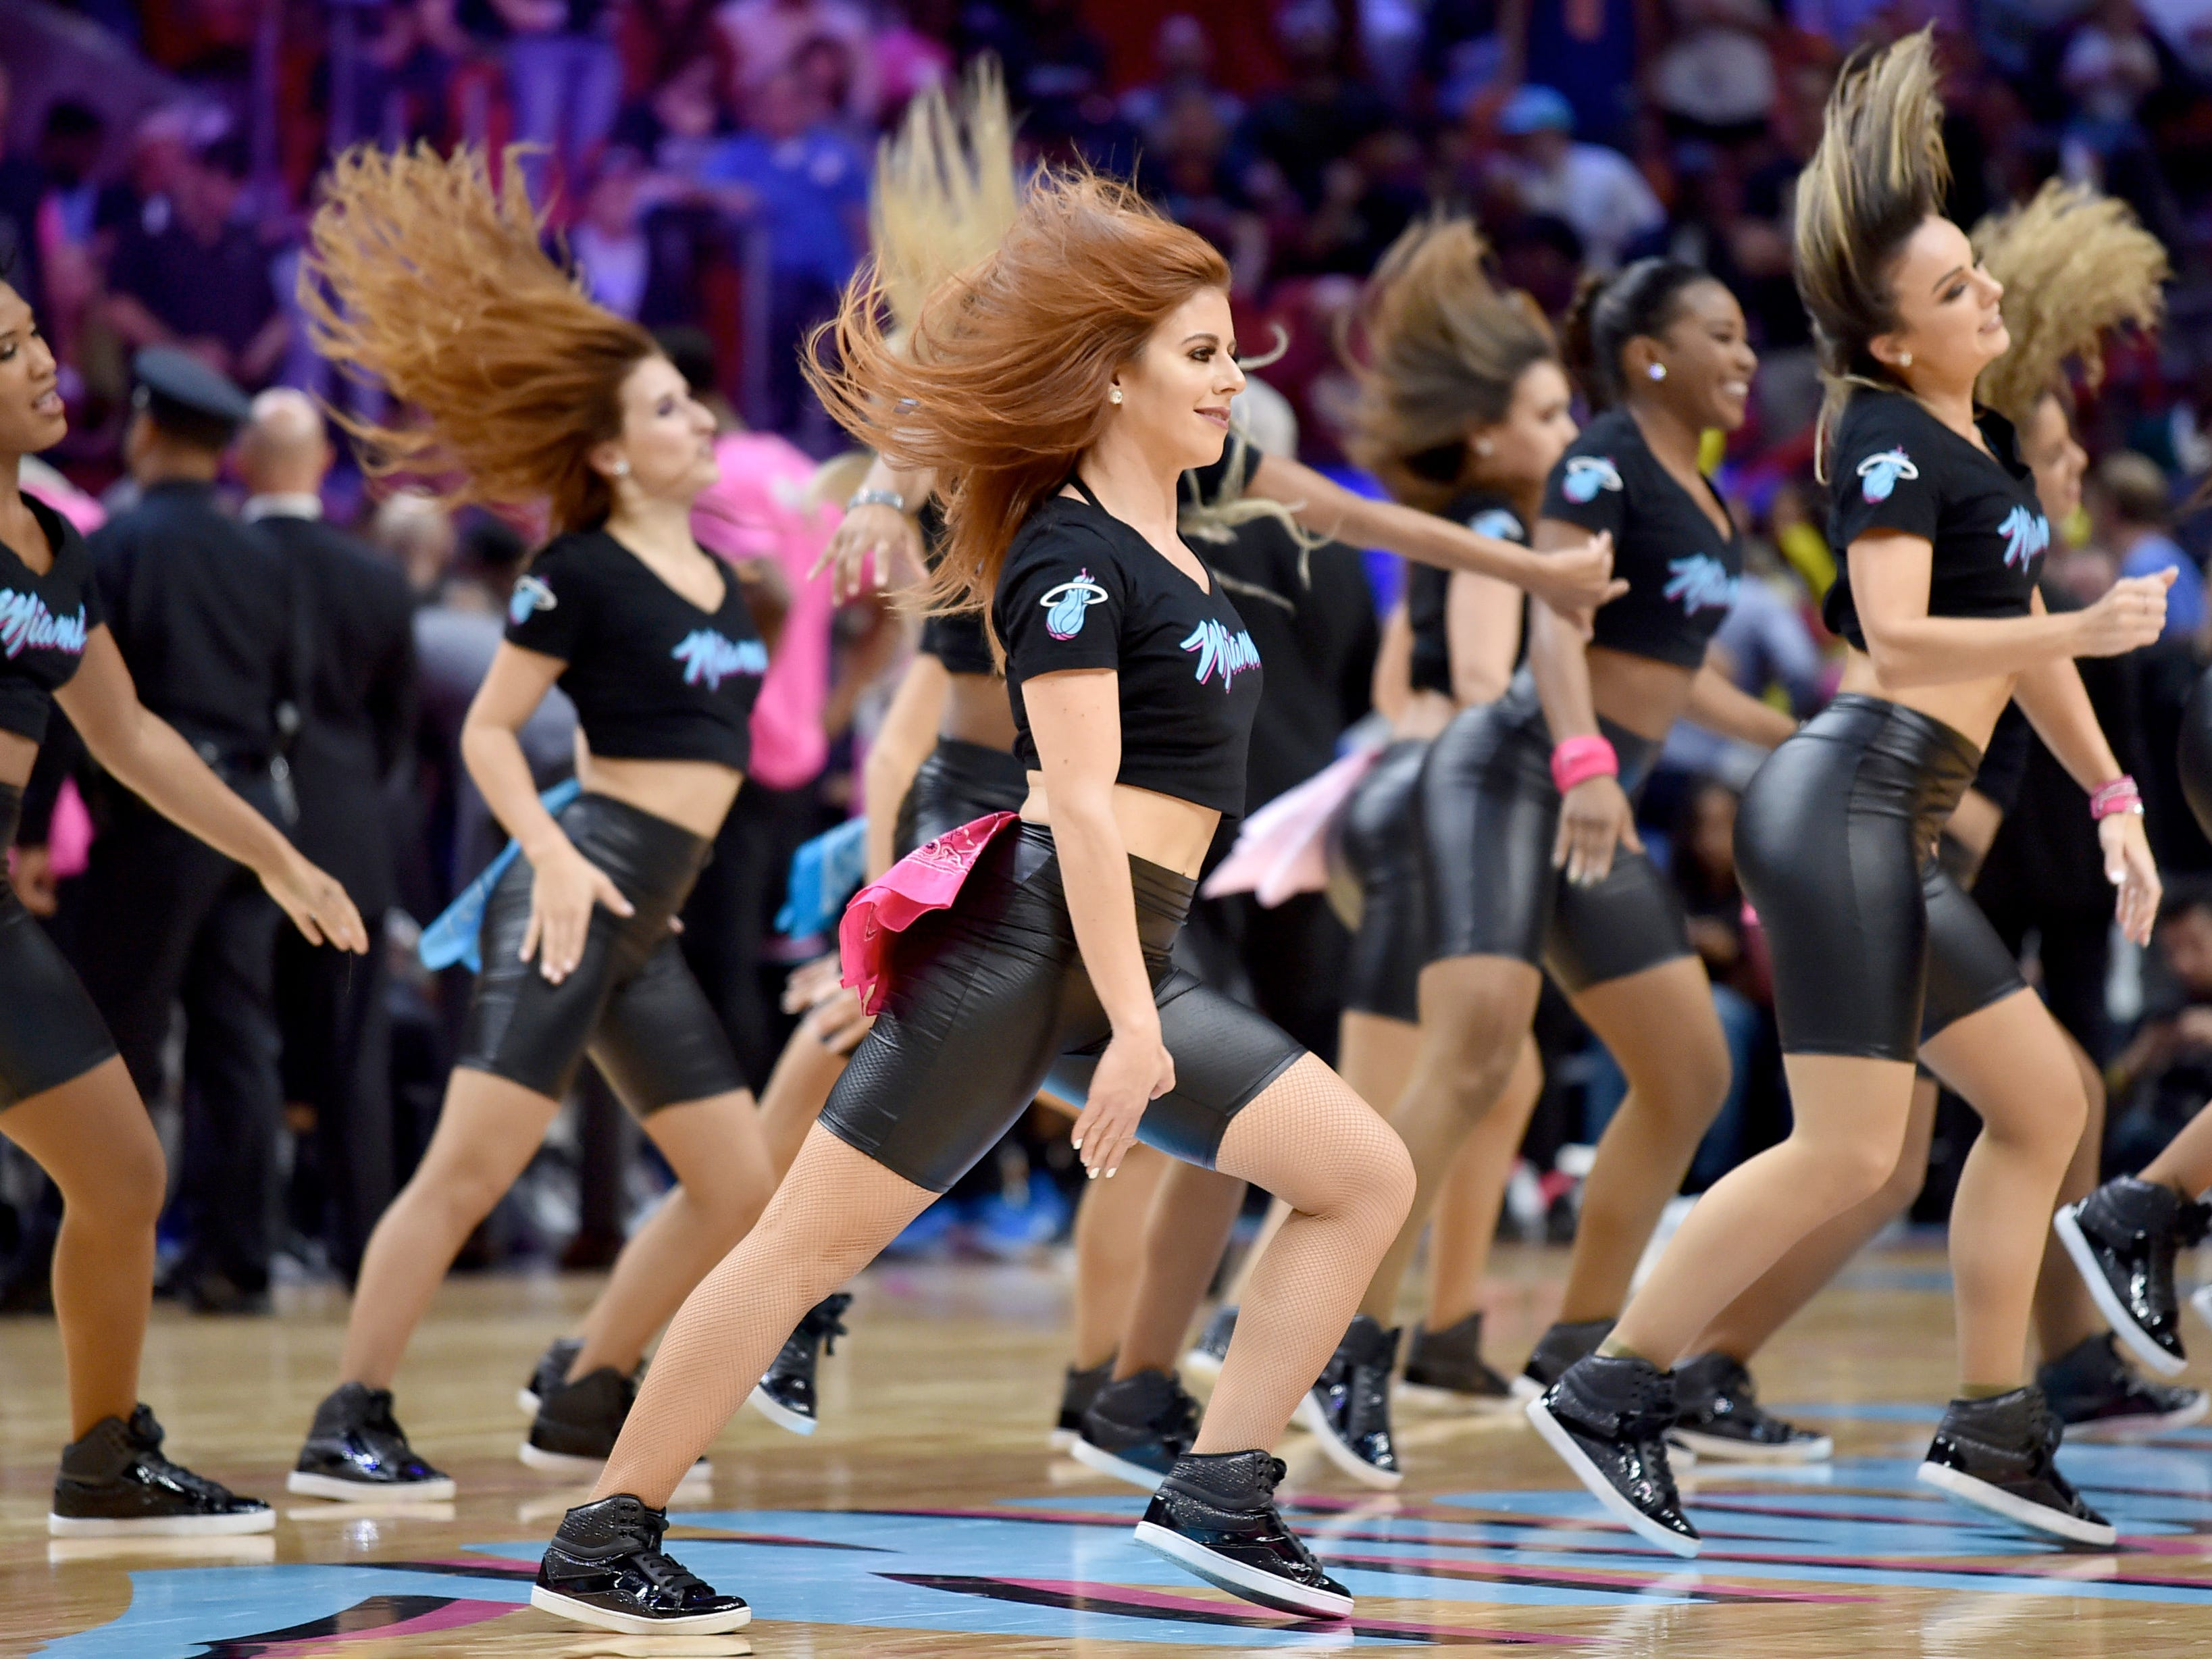 Jan. 8: Miami Heat dancers perform during the second half against the Denver Nuggets at American Airlines Arena.